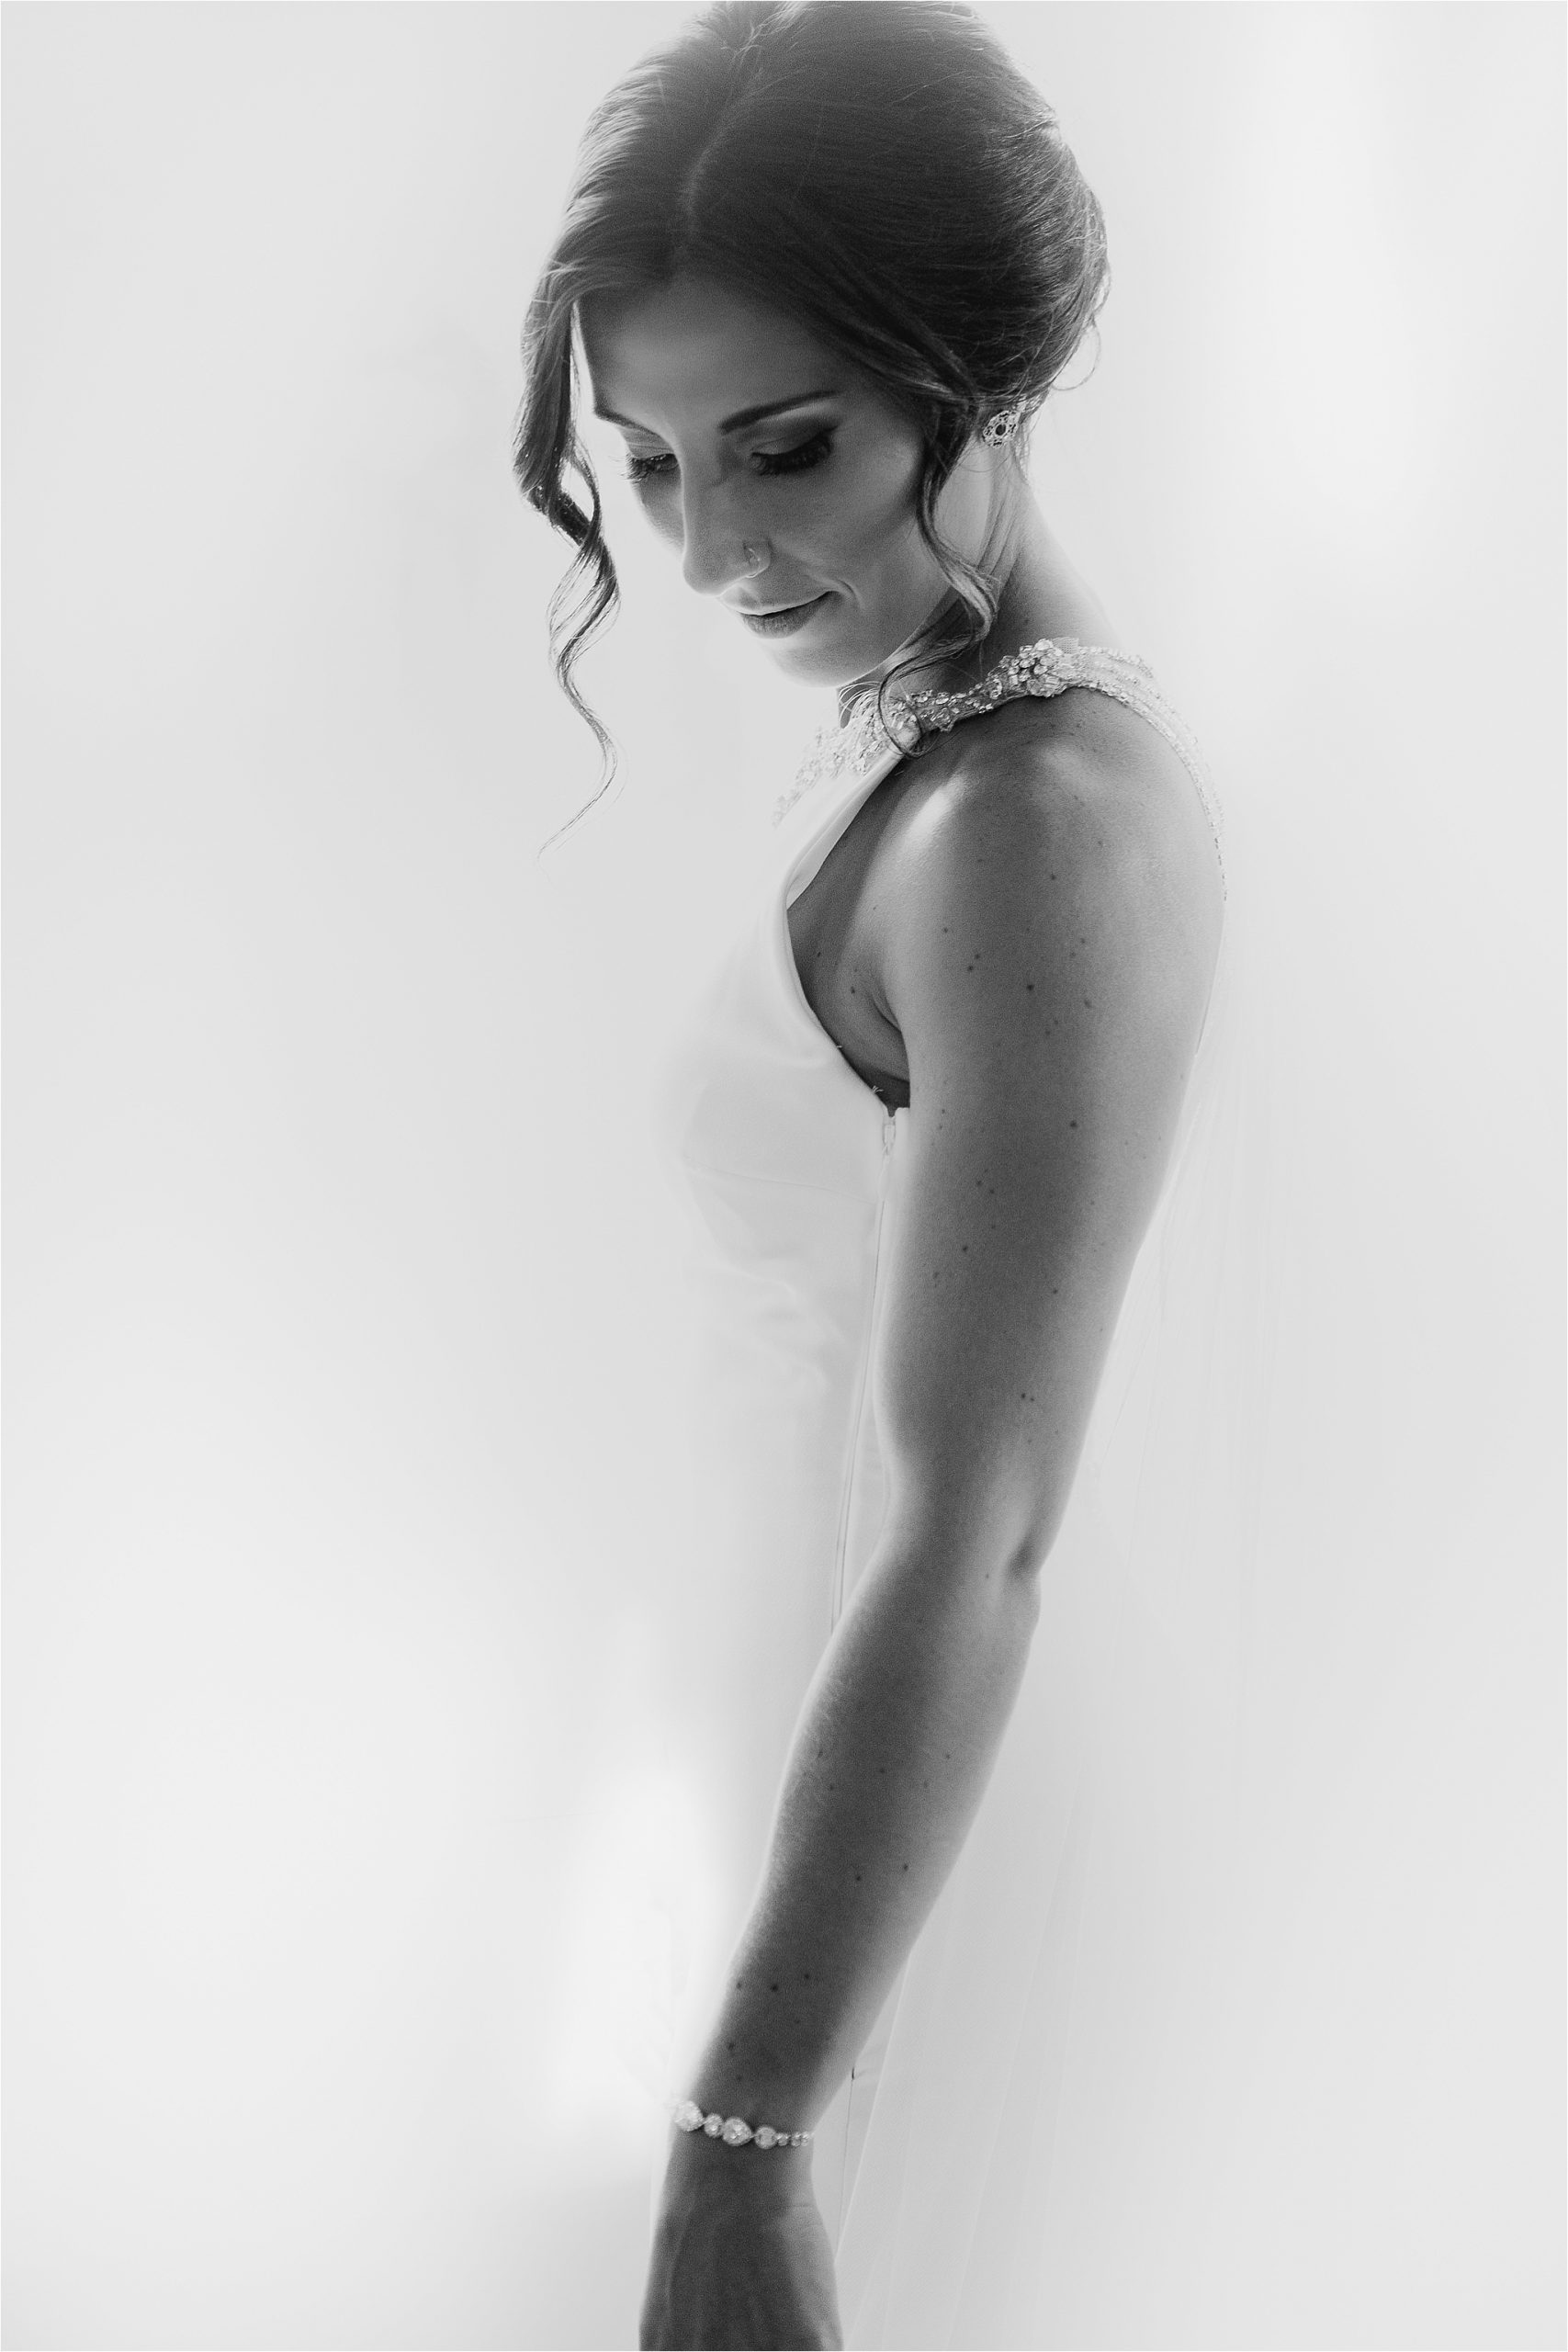 Bride in wedding dress, artsy, black and white